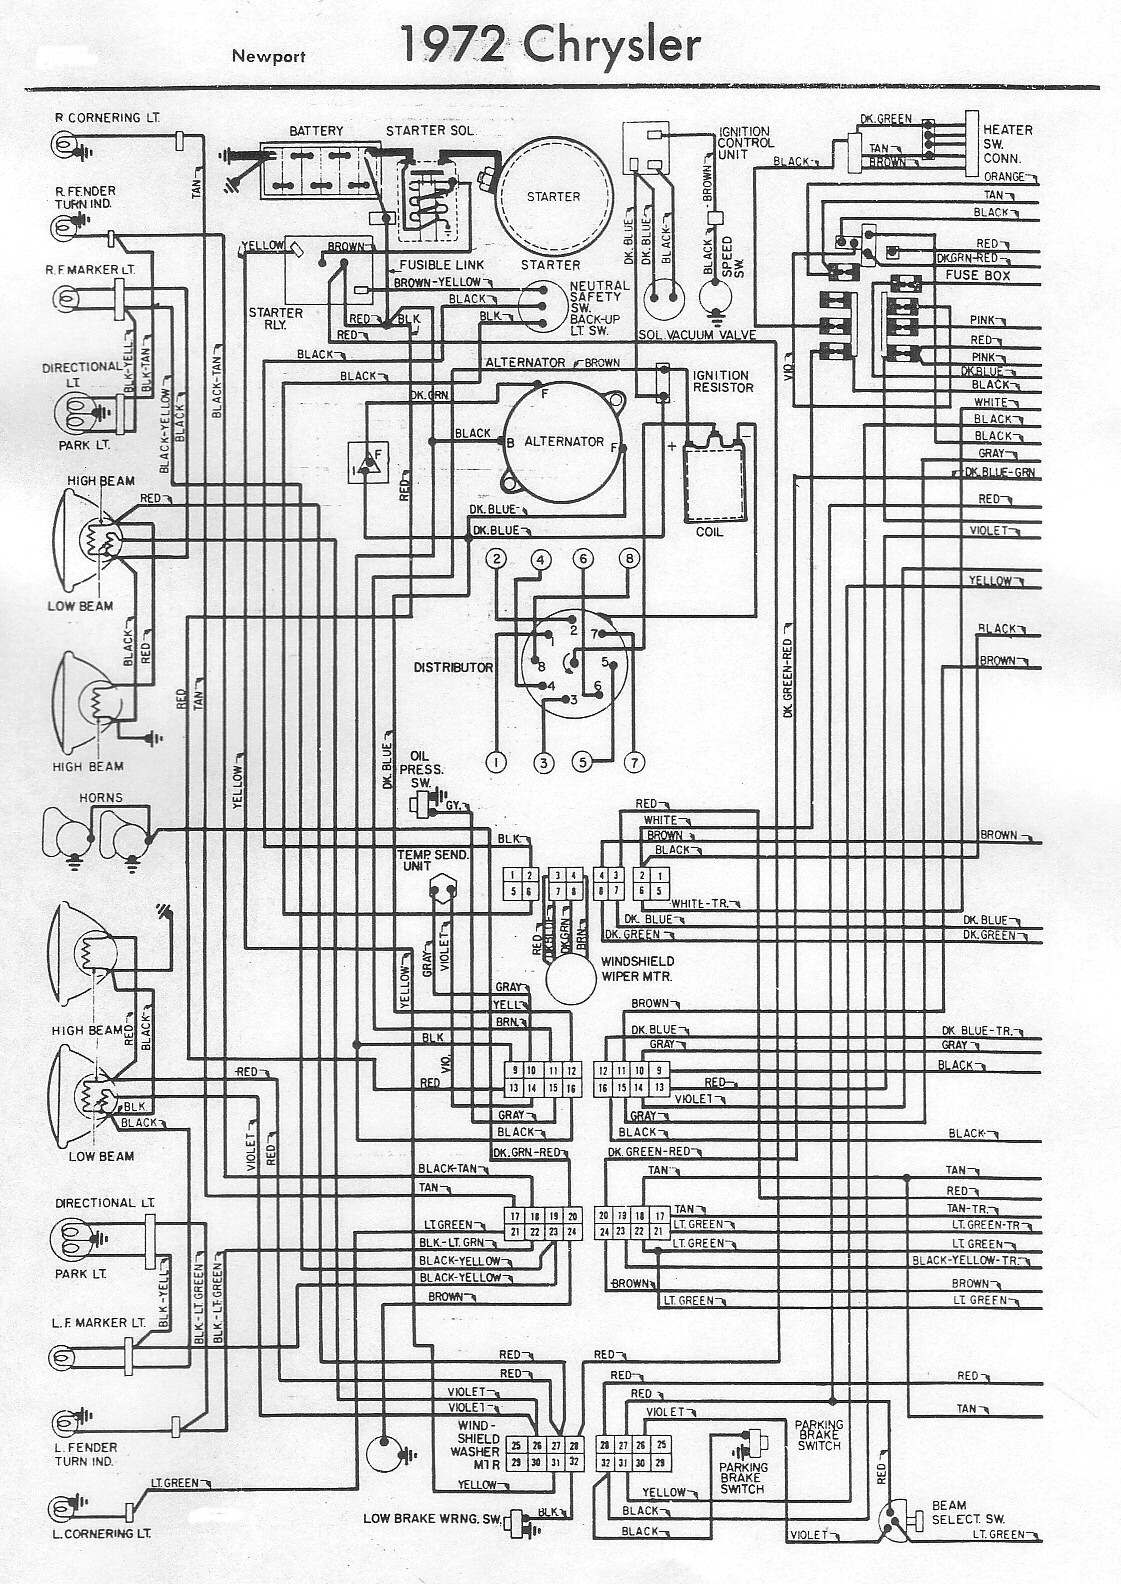 October  All About Wiring Diagrams - 1964 chrysler newport wiring diagram